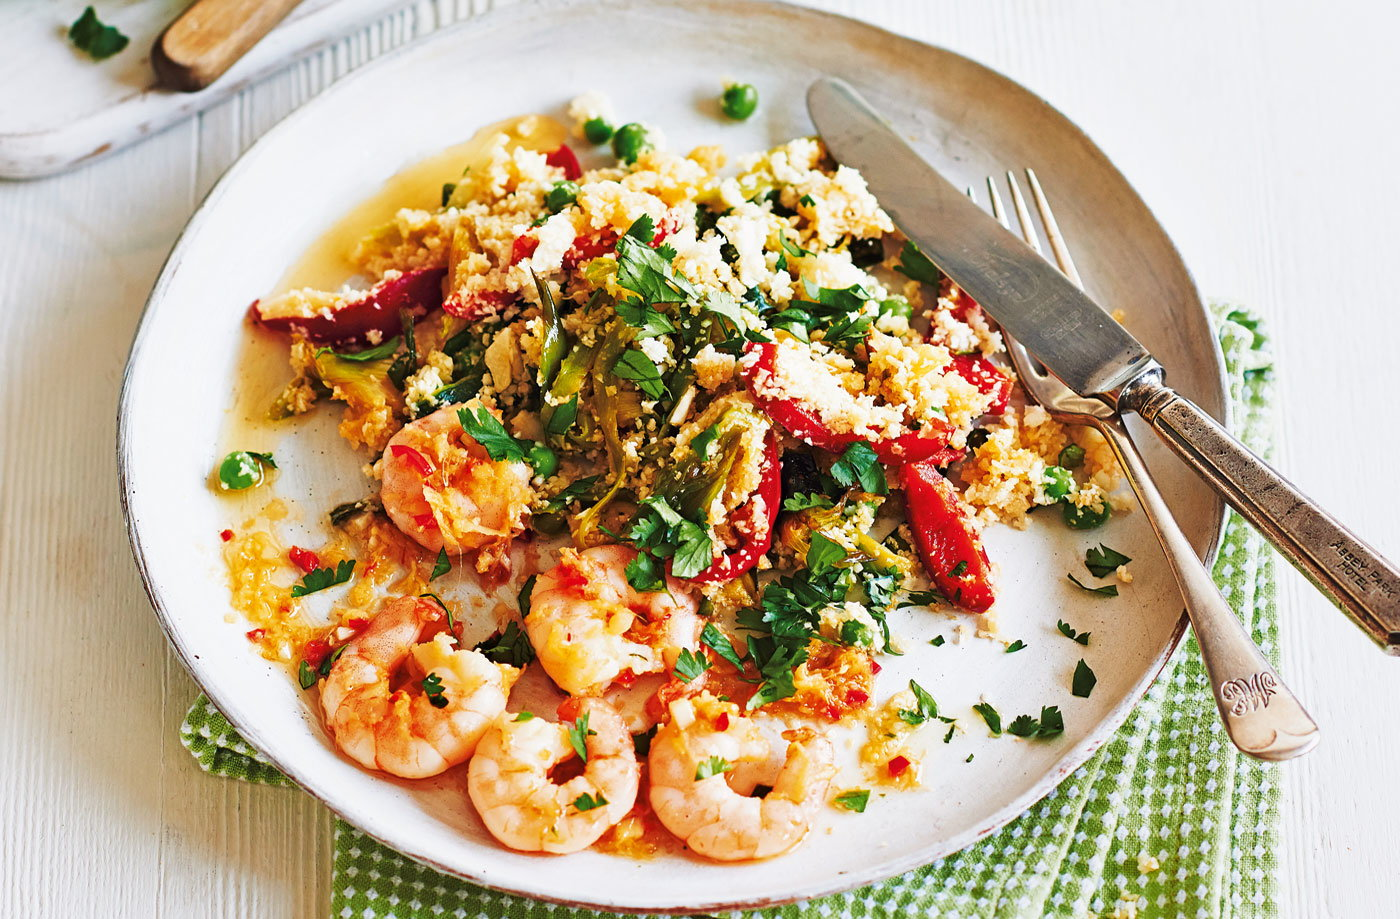 Prawn recipes seafood recipes tesco real food garlic and chilli prawns with cauliflower rice forumfinder Choice Image